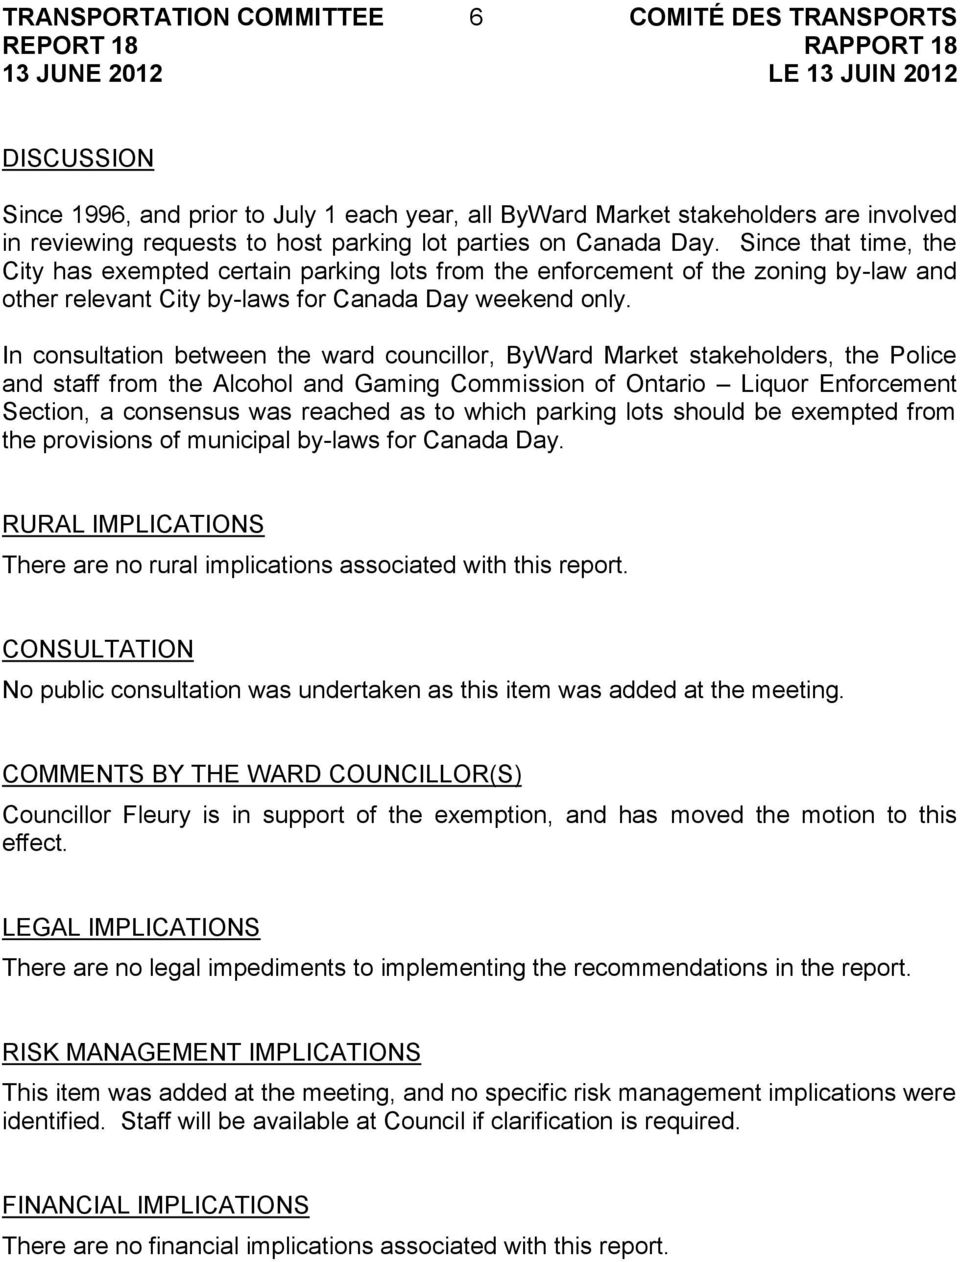 In consultation between the ward councillor, ByWard Market stakeholders, the Police and staff from the Alcohol and Gaming Commission of Ontario Liquor Enforcement Section, a consensus was reached as